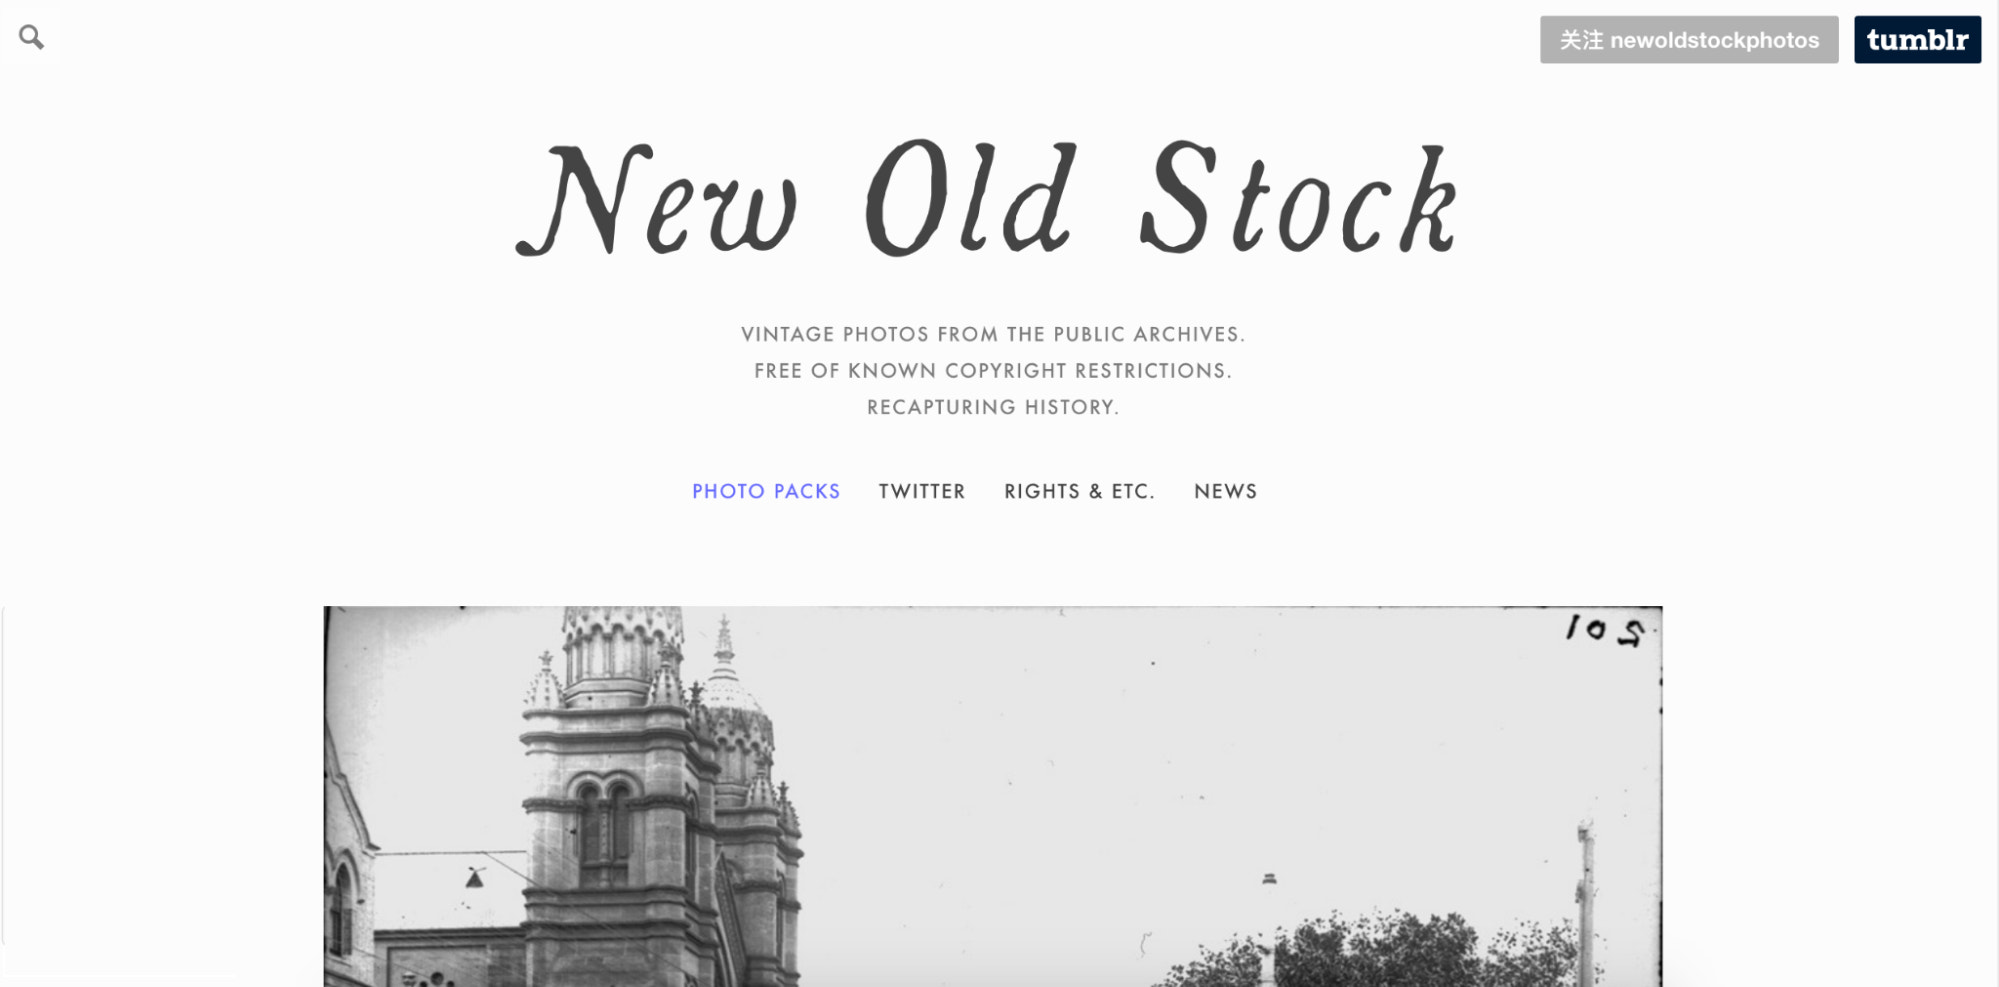 new old stock free stock photo site homepage